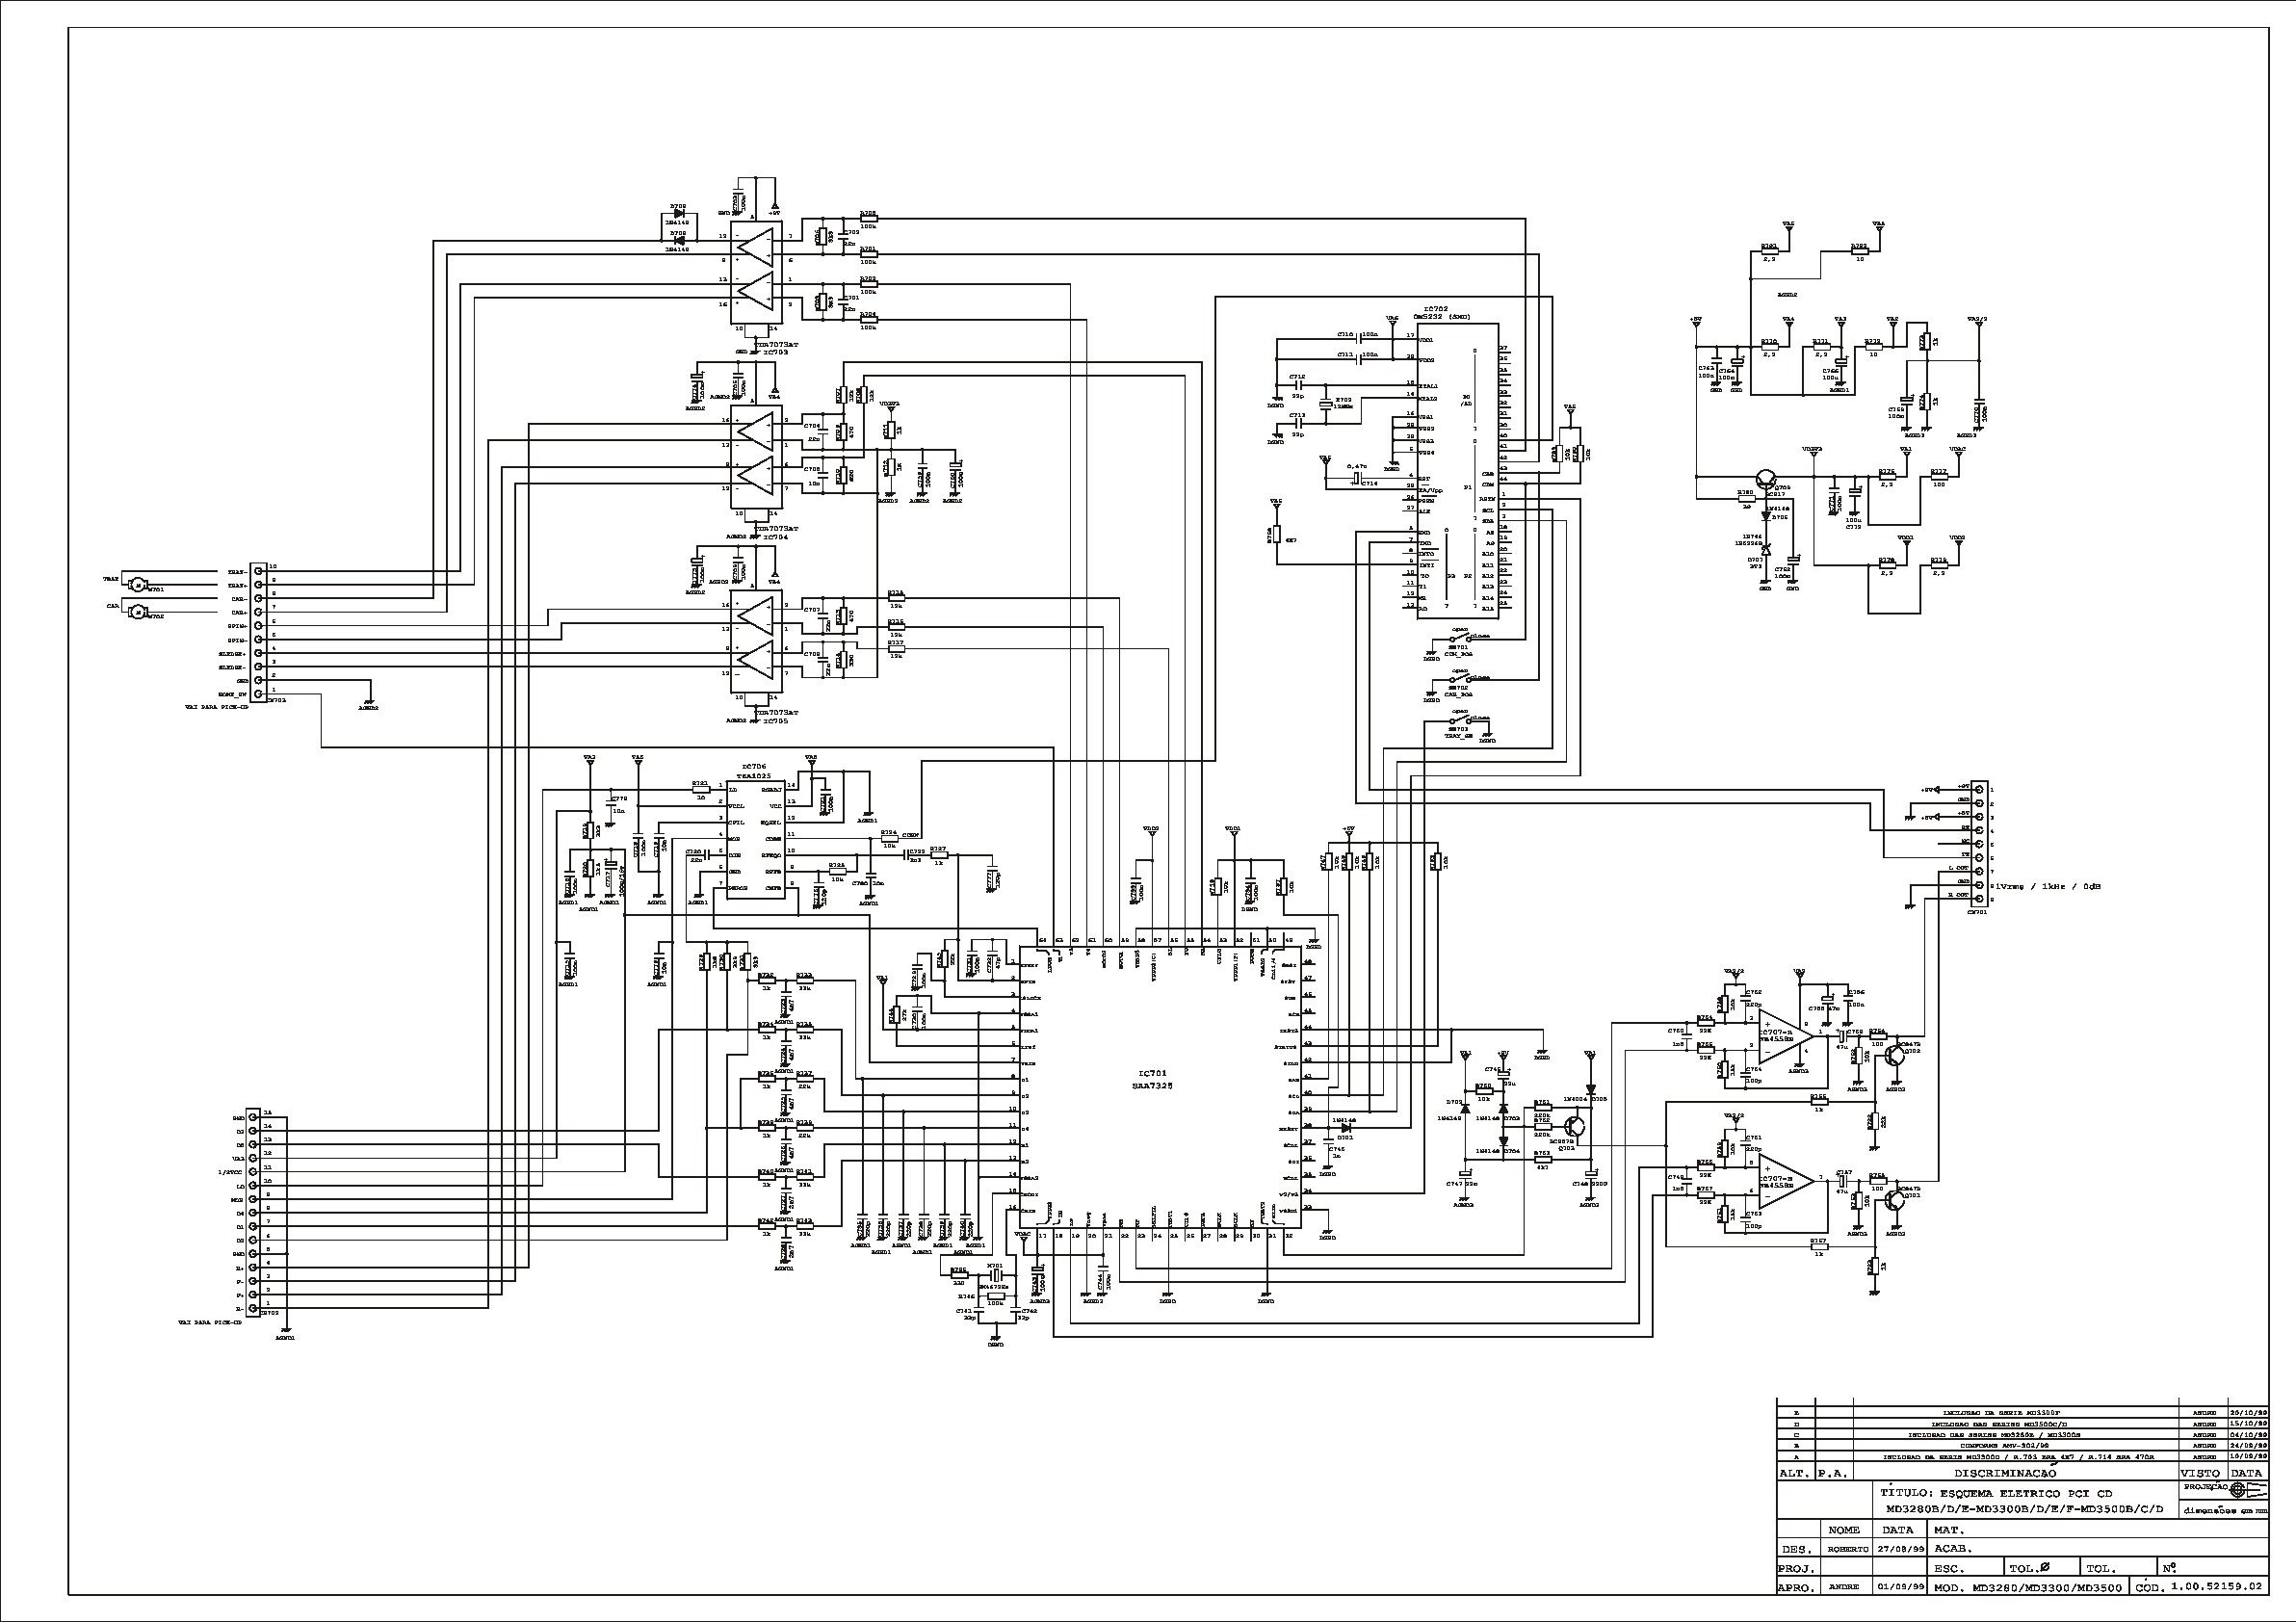 CCE Audio MD-3500D Diagrama Esquematico.pdf